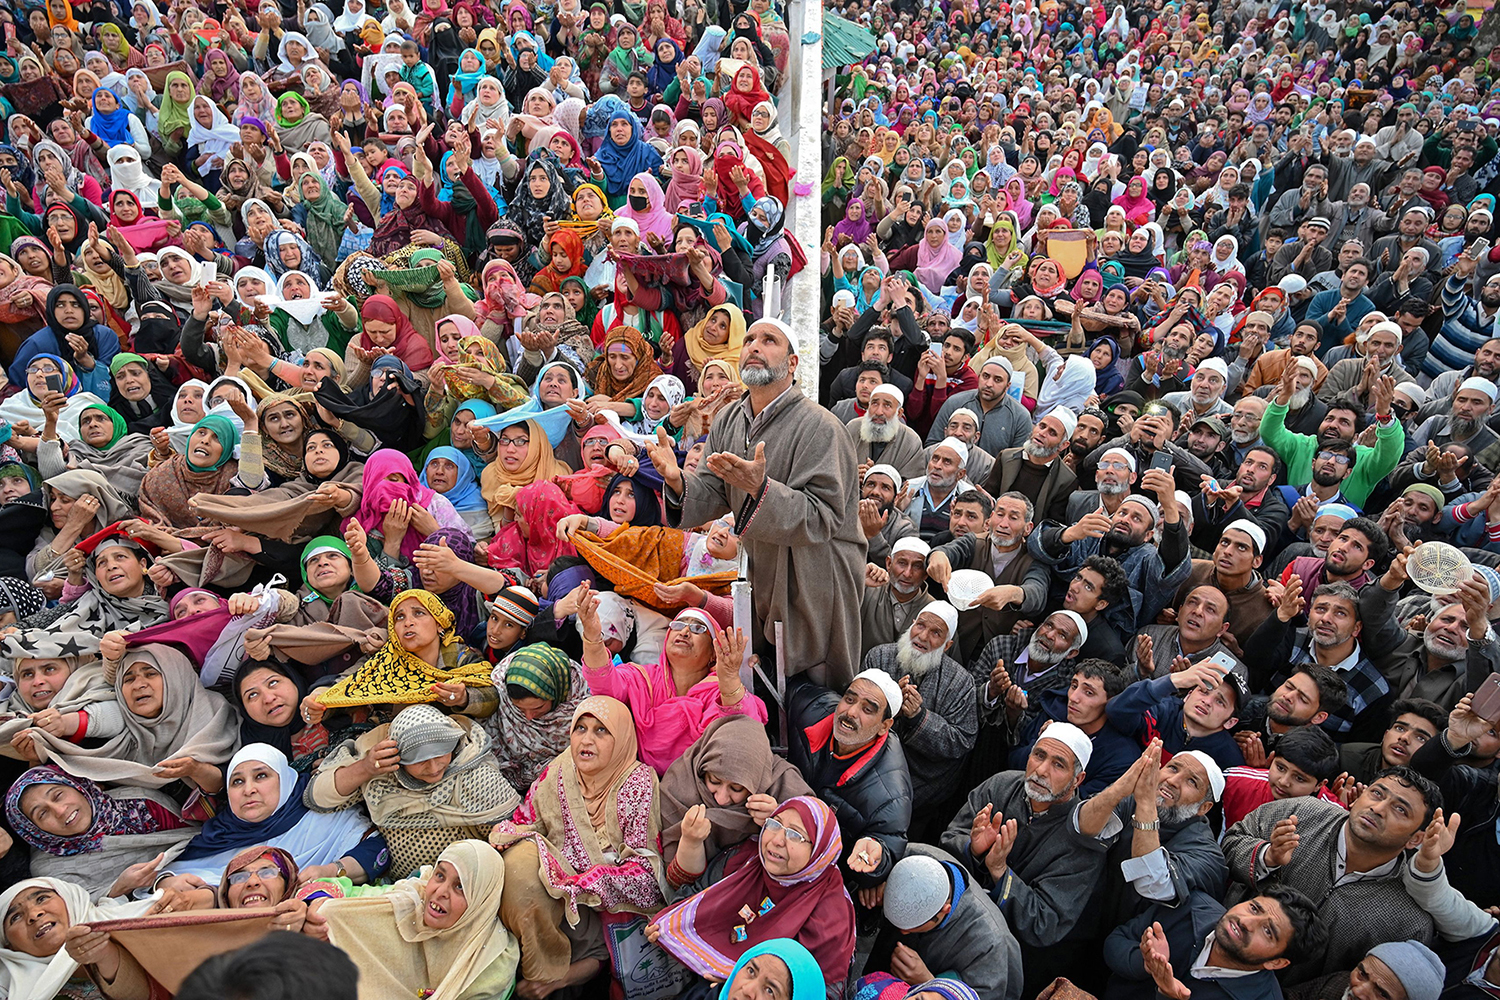 Kashmiri Muslims pray as a cleric displays a holy relic, believed to be a hair from the Prophet Mohammed's beard, during celebrations for Miraj-Ul-Alam at Kashmir's main Hazratbal shrine in Srinagar on April 4. TAUSEEF MUSTAFA/AFP/Getty Images